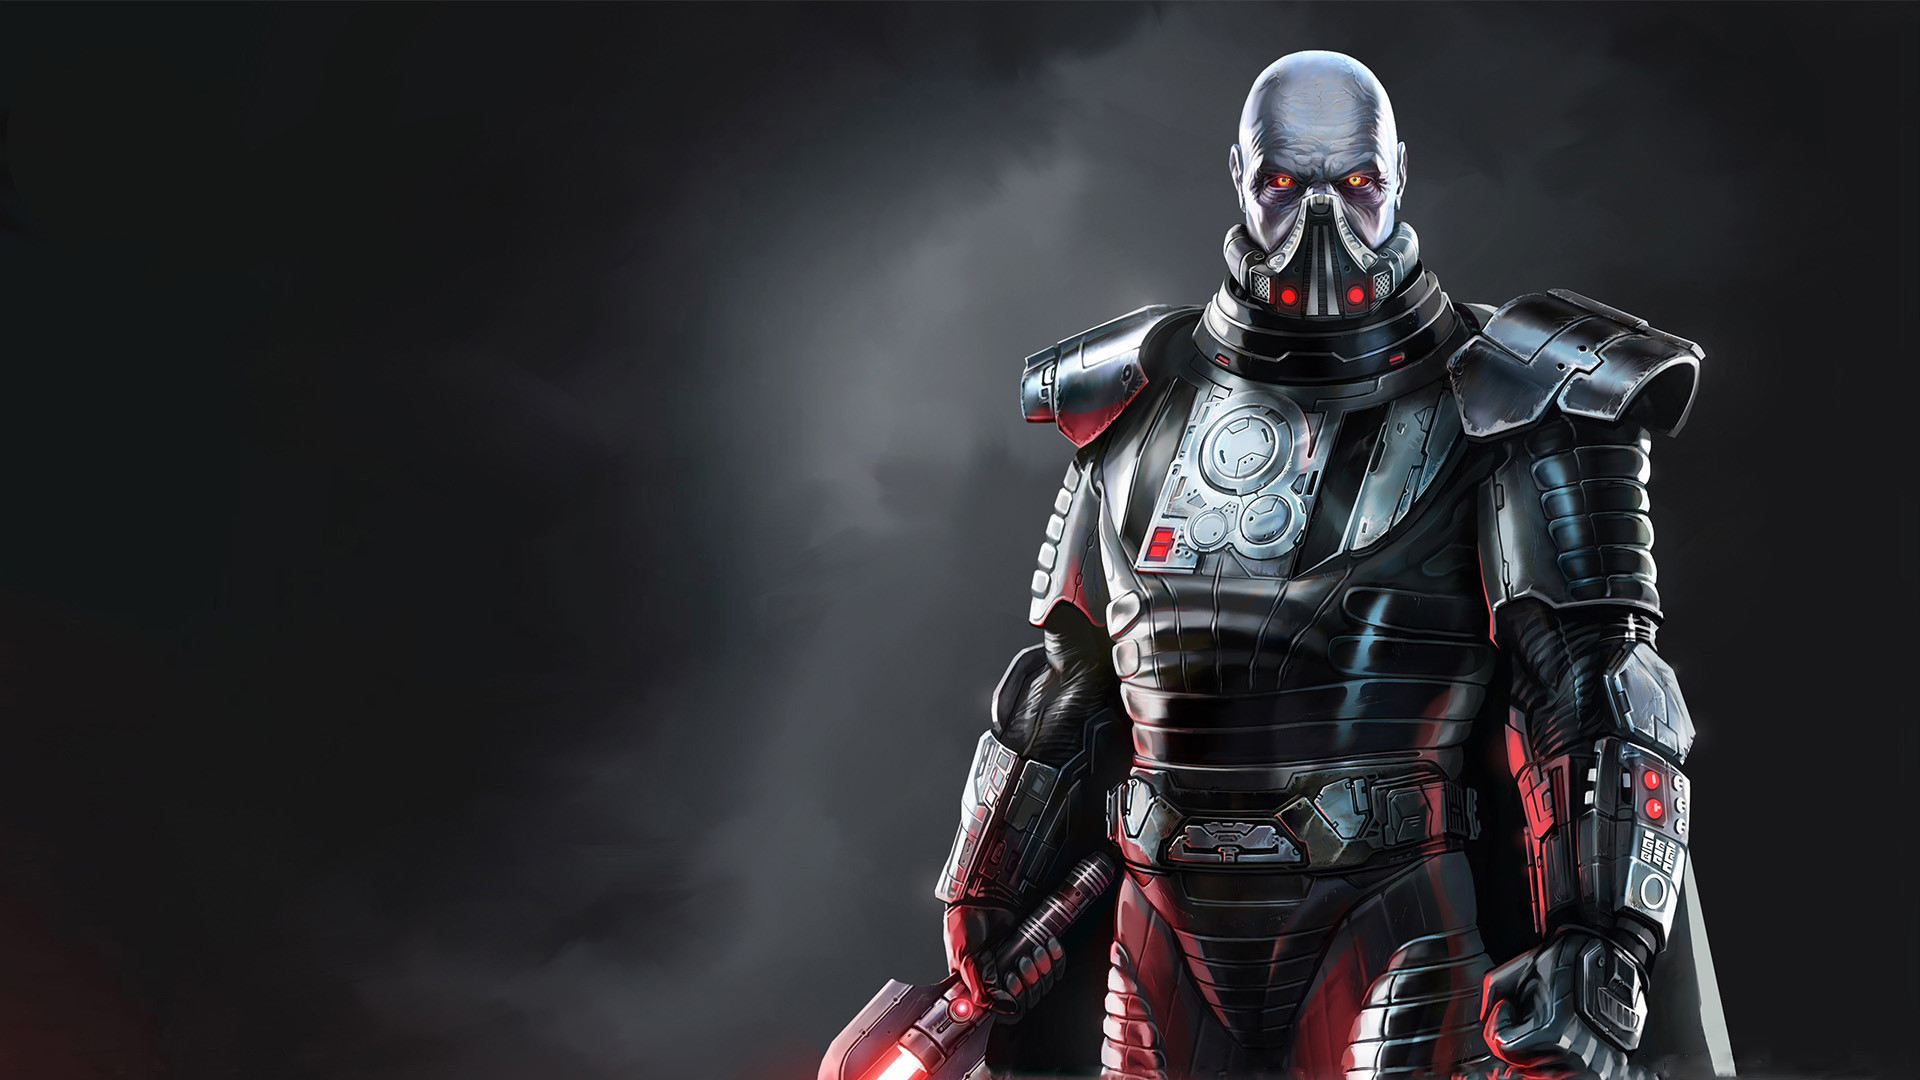 1920x1080 30 Inspiring Star Wars The Old Republic Wallpaper!